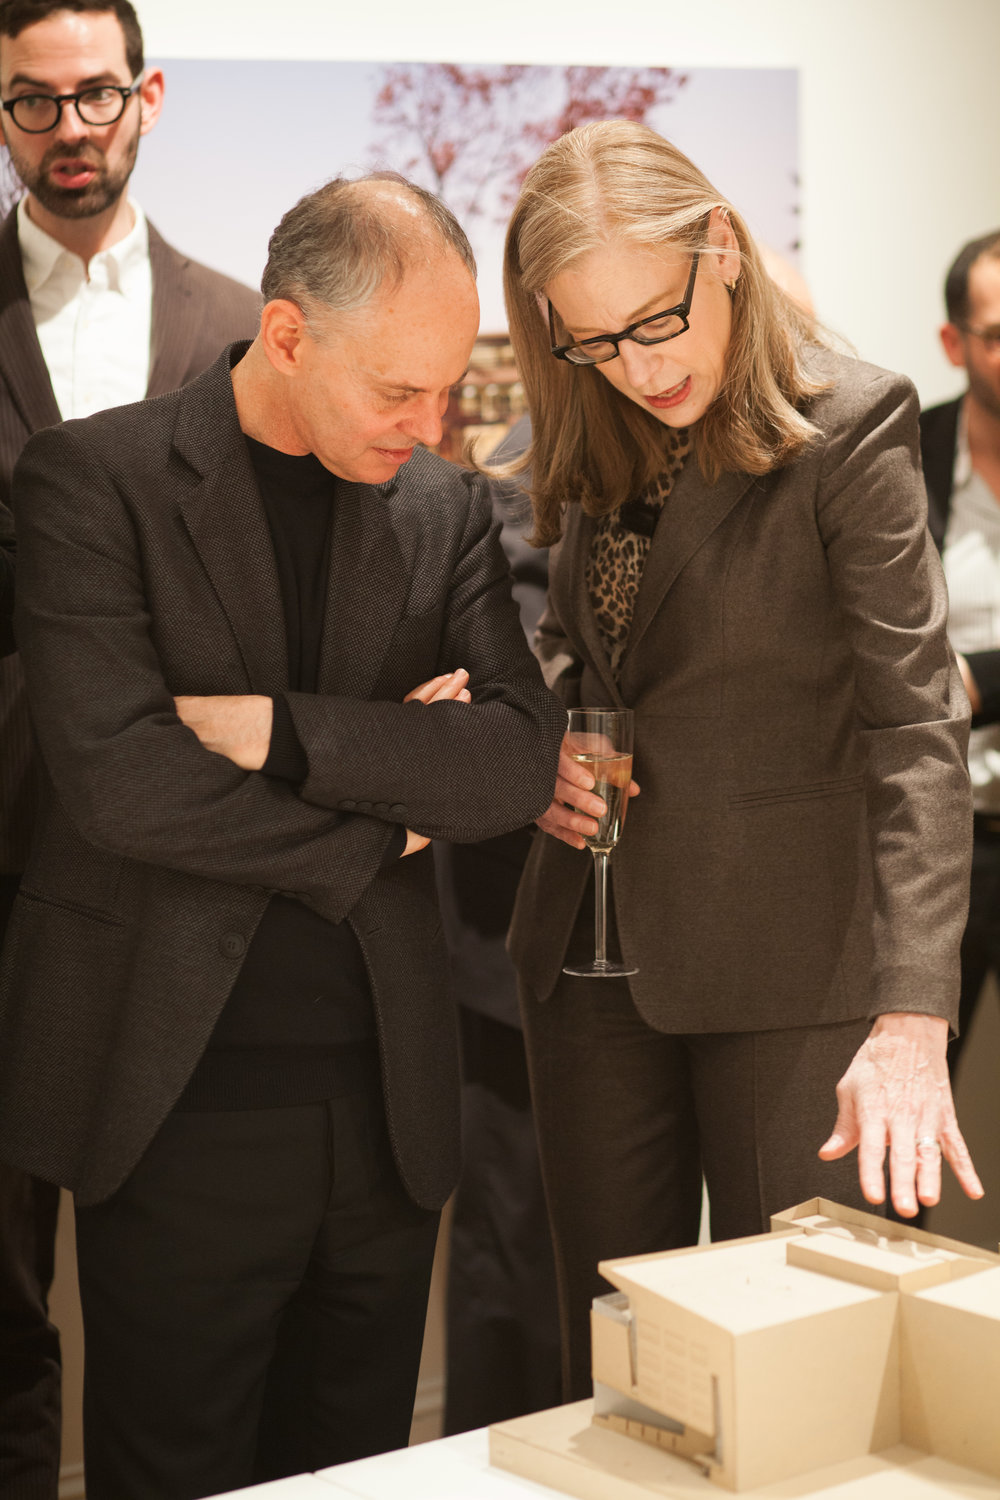 Sylvia with Dean Kent Kleinman for the launch of the firm's monograph at the National Gallery